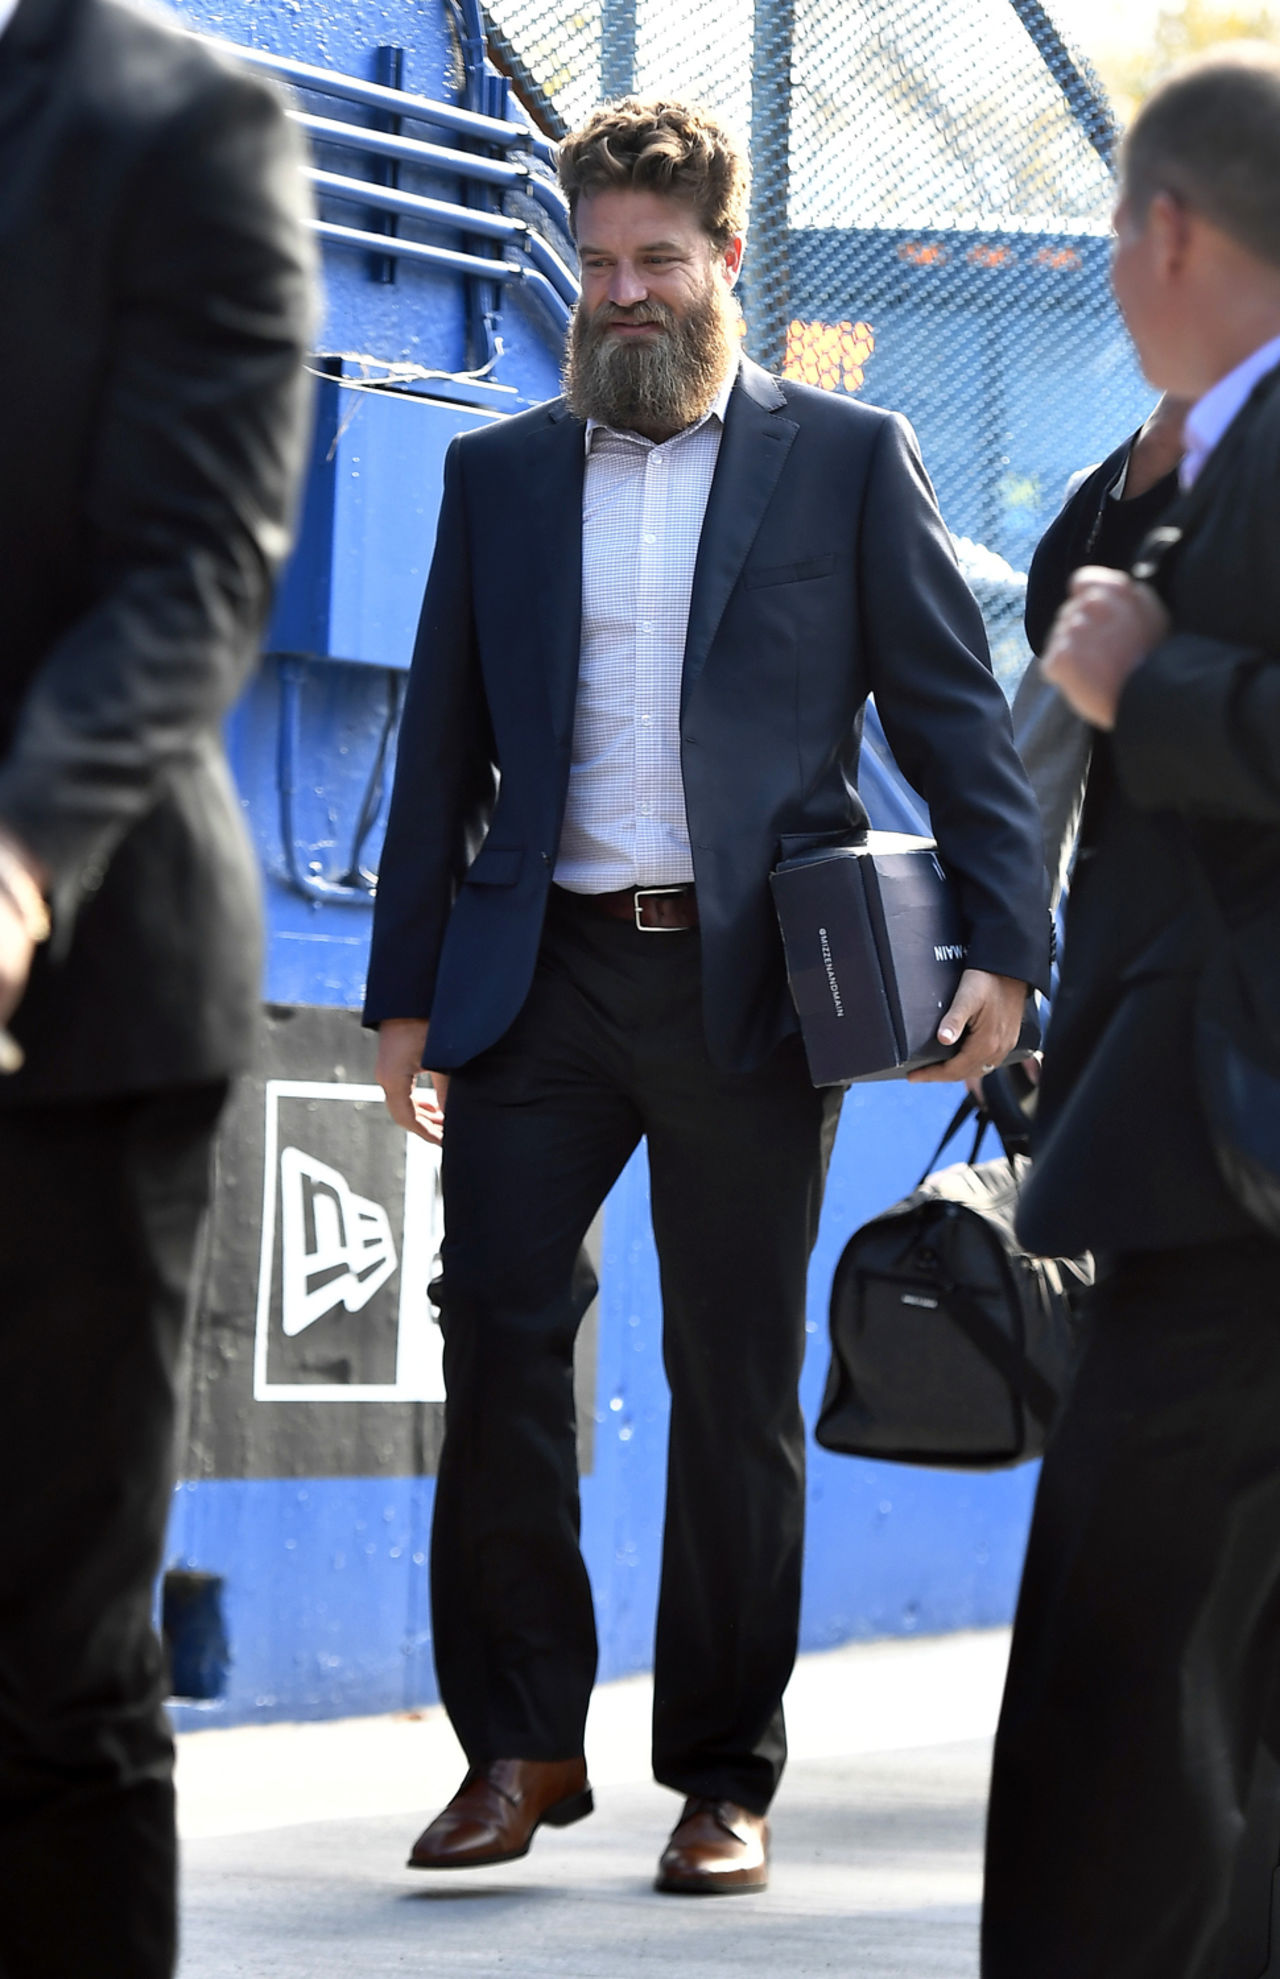 Miami Dolphins quarterback Ryan Fitzpatrick arrives for an NFL football game against the Buffalo Bills, Sunday, Oct. 20, 2019, in Orchard Park, N.Y.